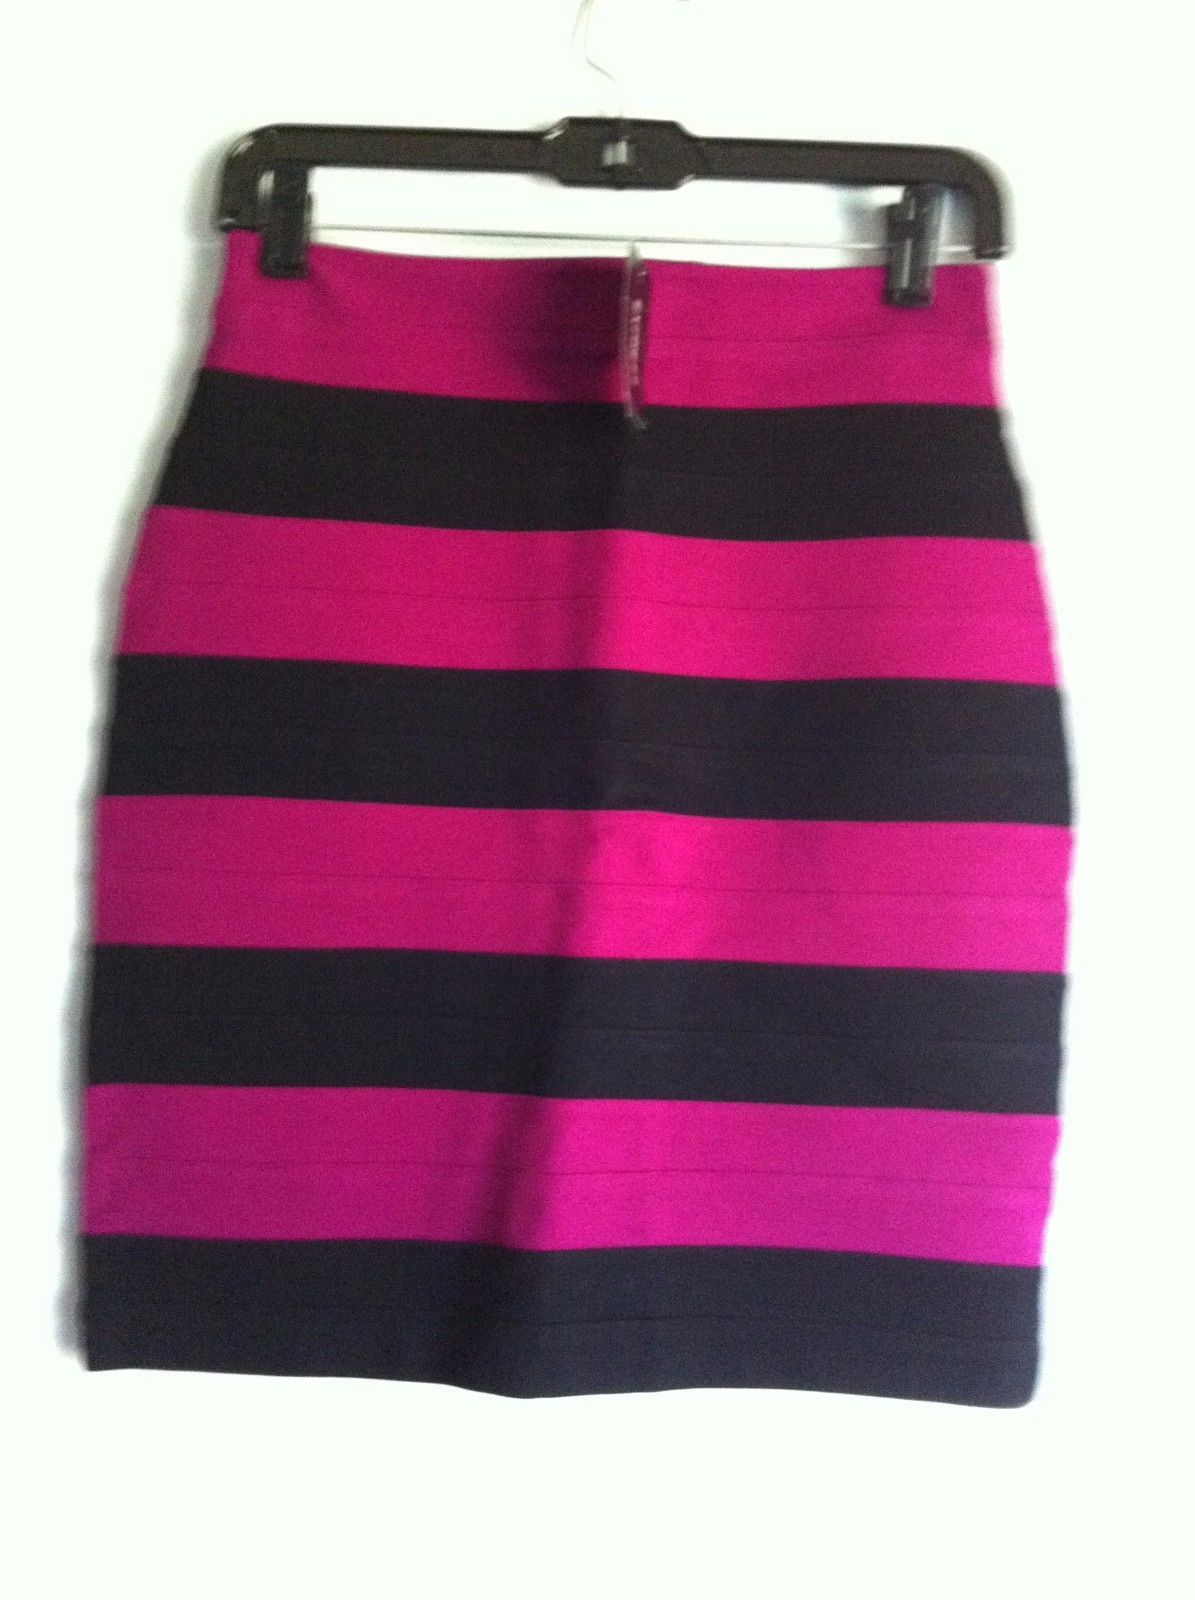 NWT Express Pencil Career Skirt Banded sz 4